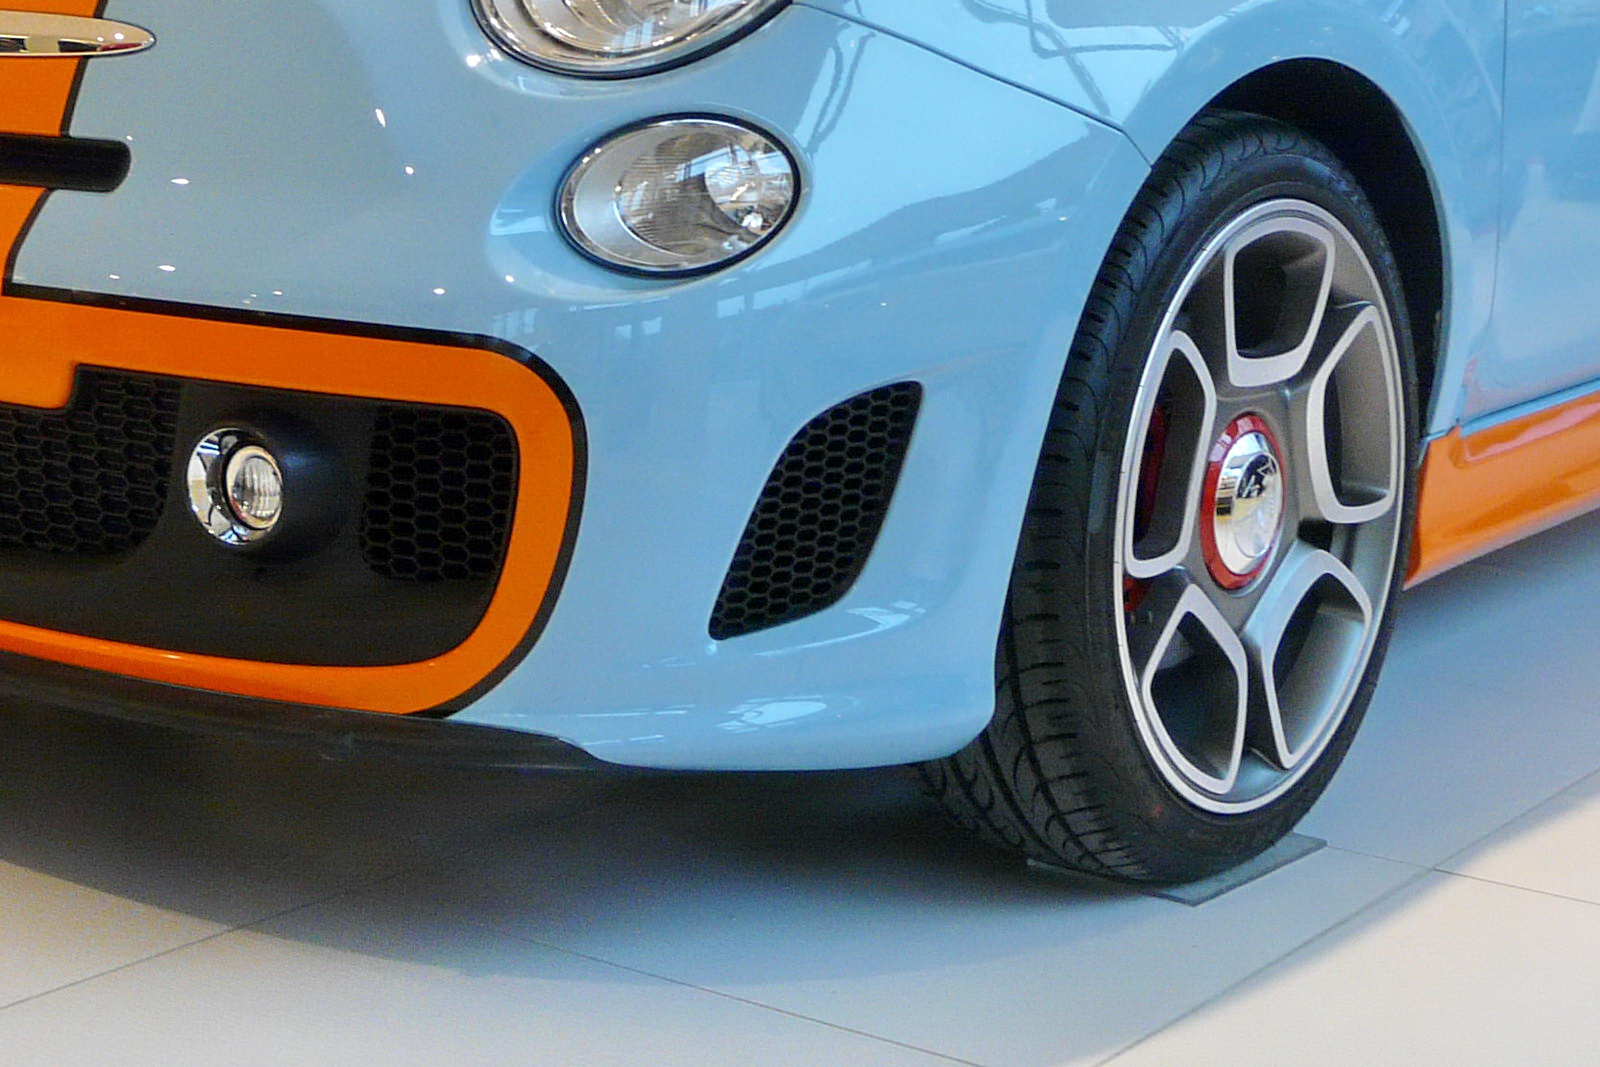 2011 Limited Edition Fiat Abarth 500 Gulf - Concept Car